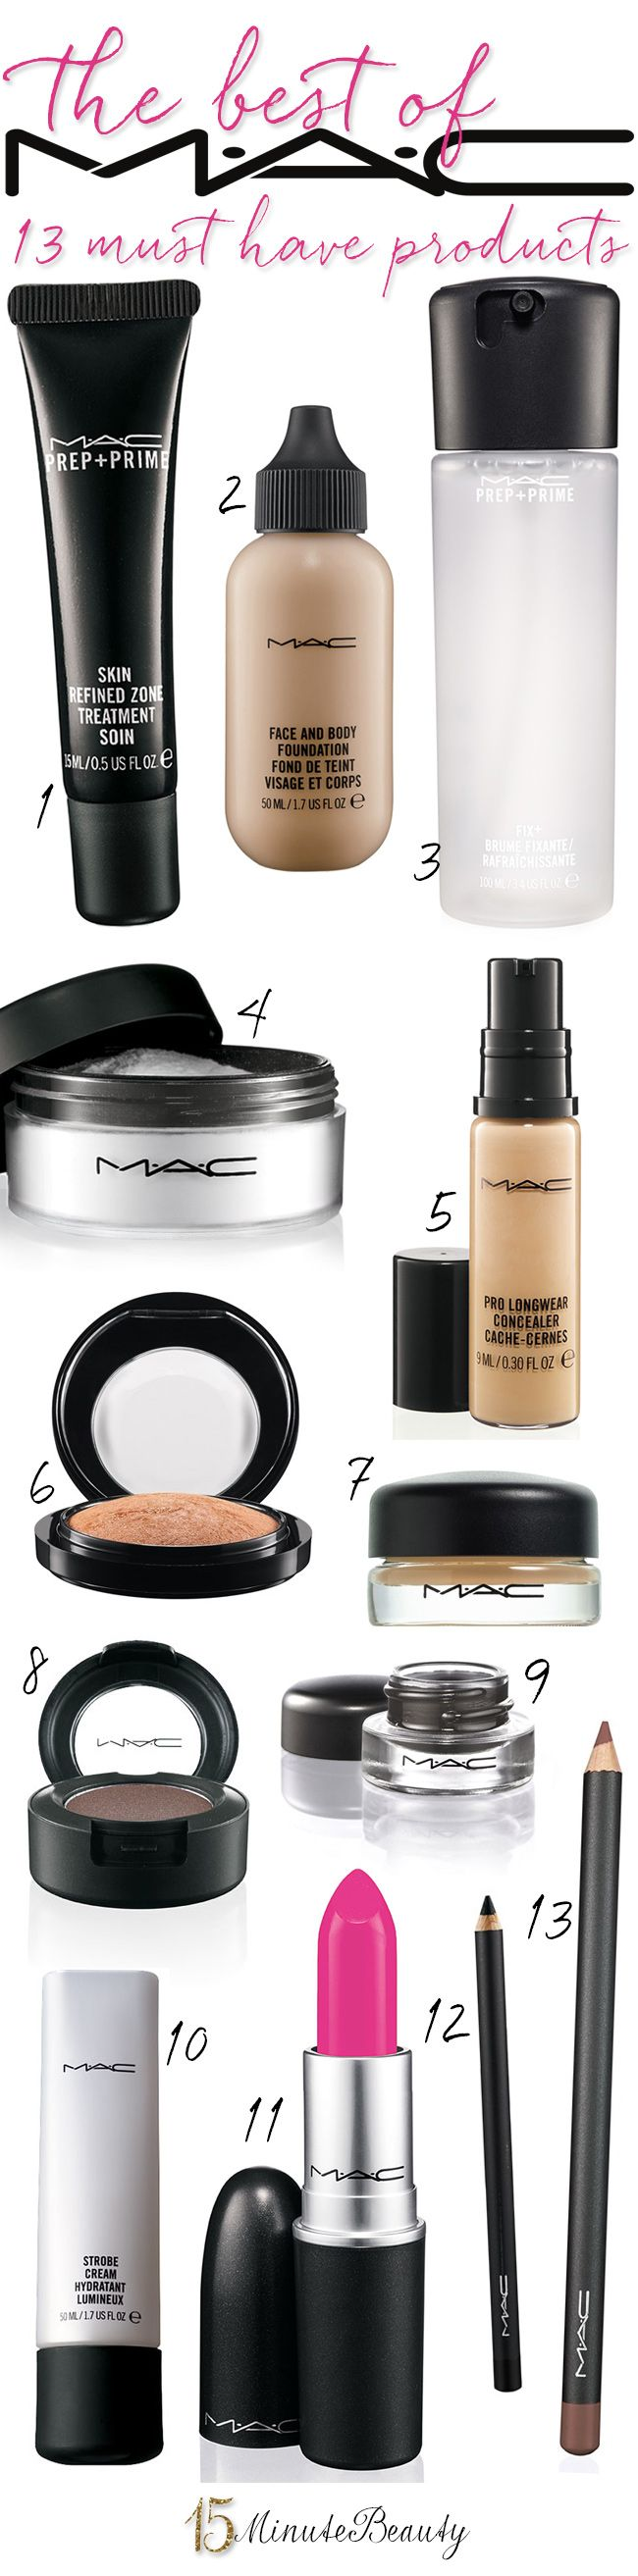 The Best Makeup From Mac The 13 Products You Must Have 15 Minute Beauty Fanatic Best Makeup Products Best Mac Makeup Mac Makeup